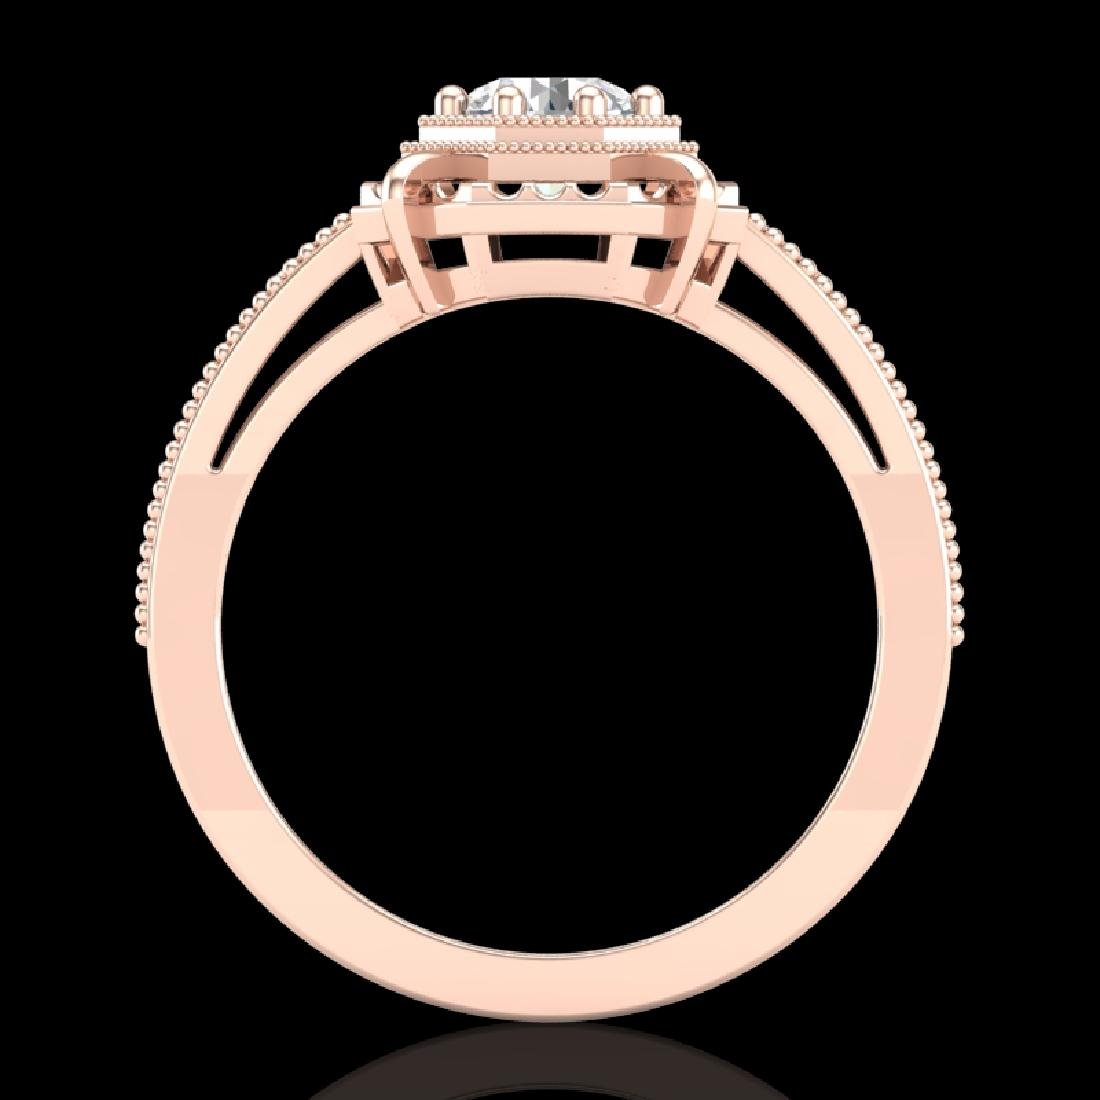 0.53 CTW VS/SI Diamond Solitaire Art Deco Ring 18K Rose